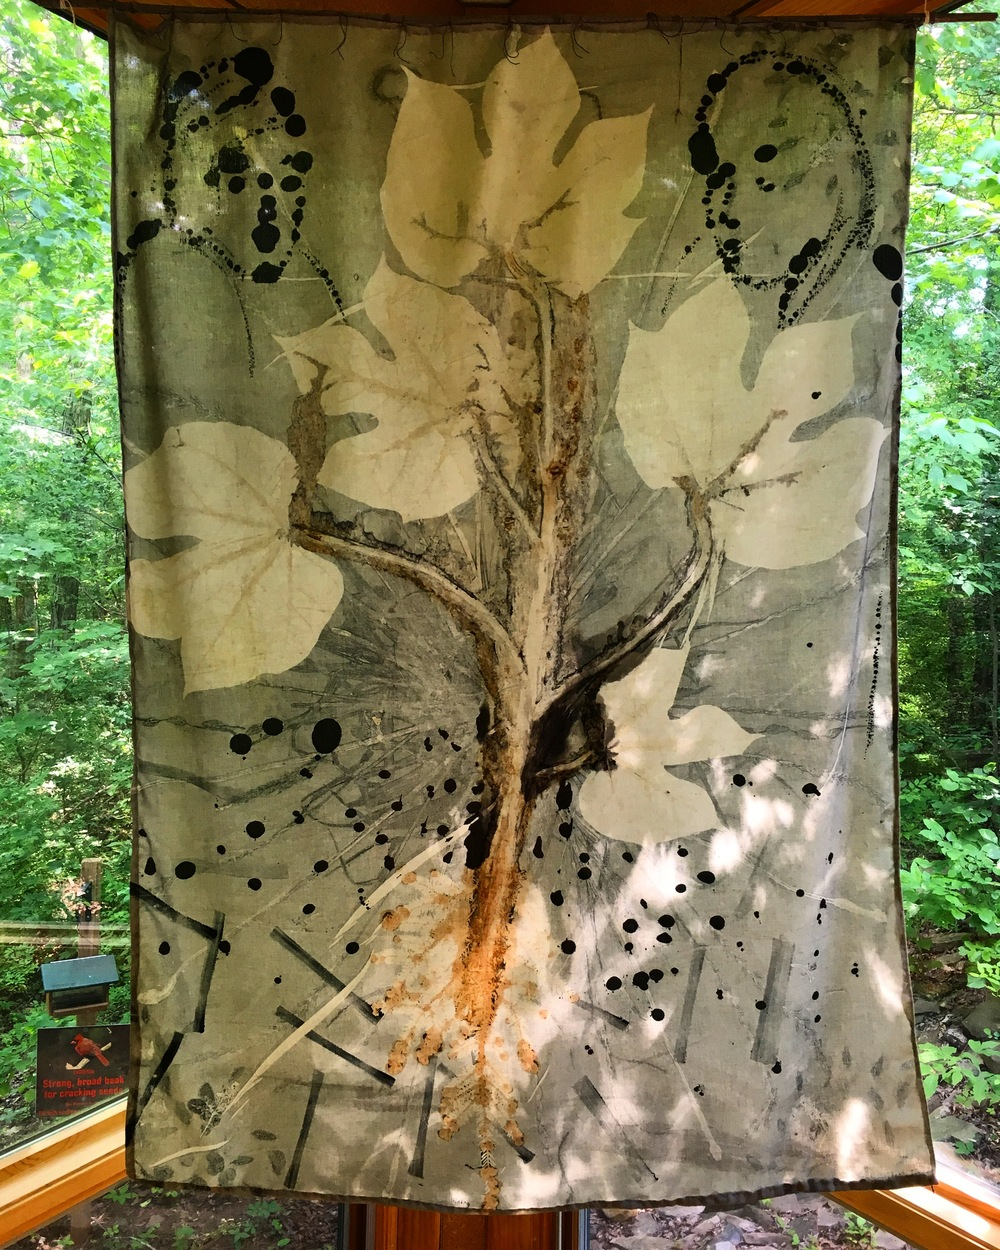 """Hiding"", Celeste Amparo Pfau, botanical mono print with ink drawing on green cotton fabric. This is just one of many pieces in Eco Stories, an exhibition of work by local artists in conversation with nature. Check it out today at the Nature Center!"